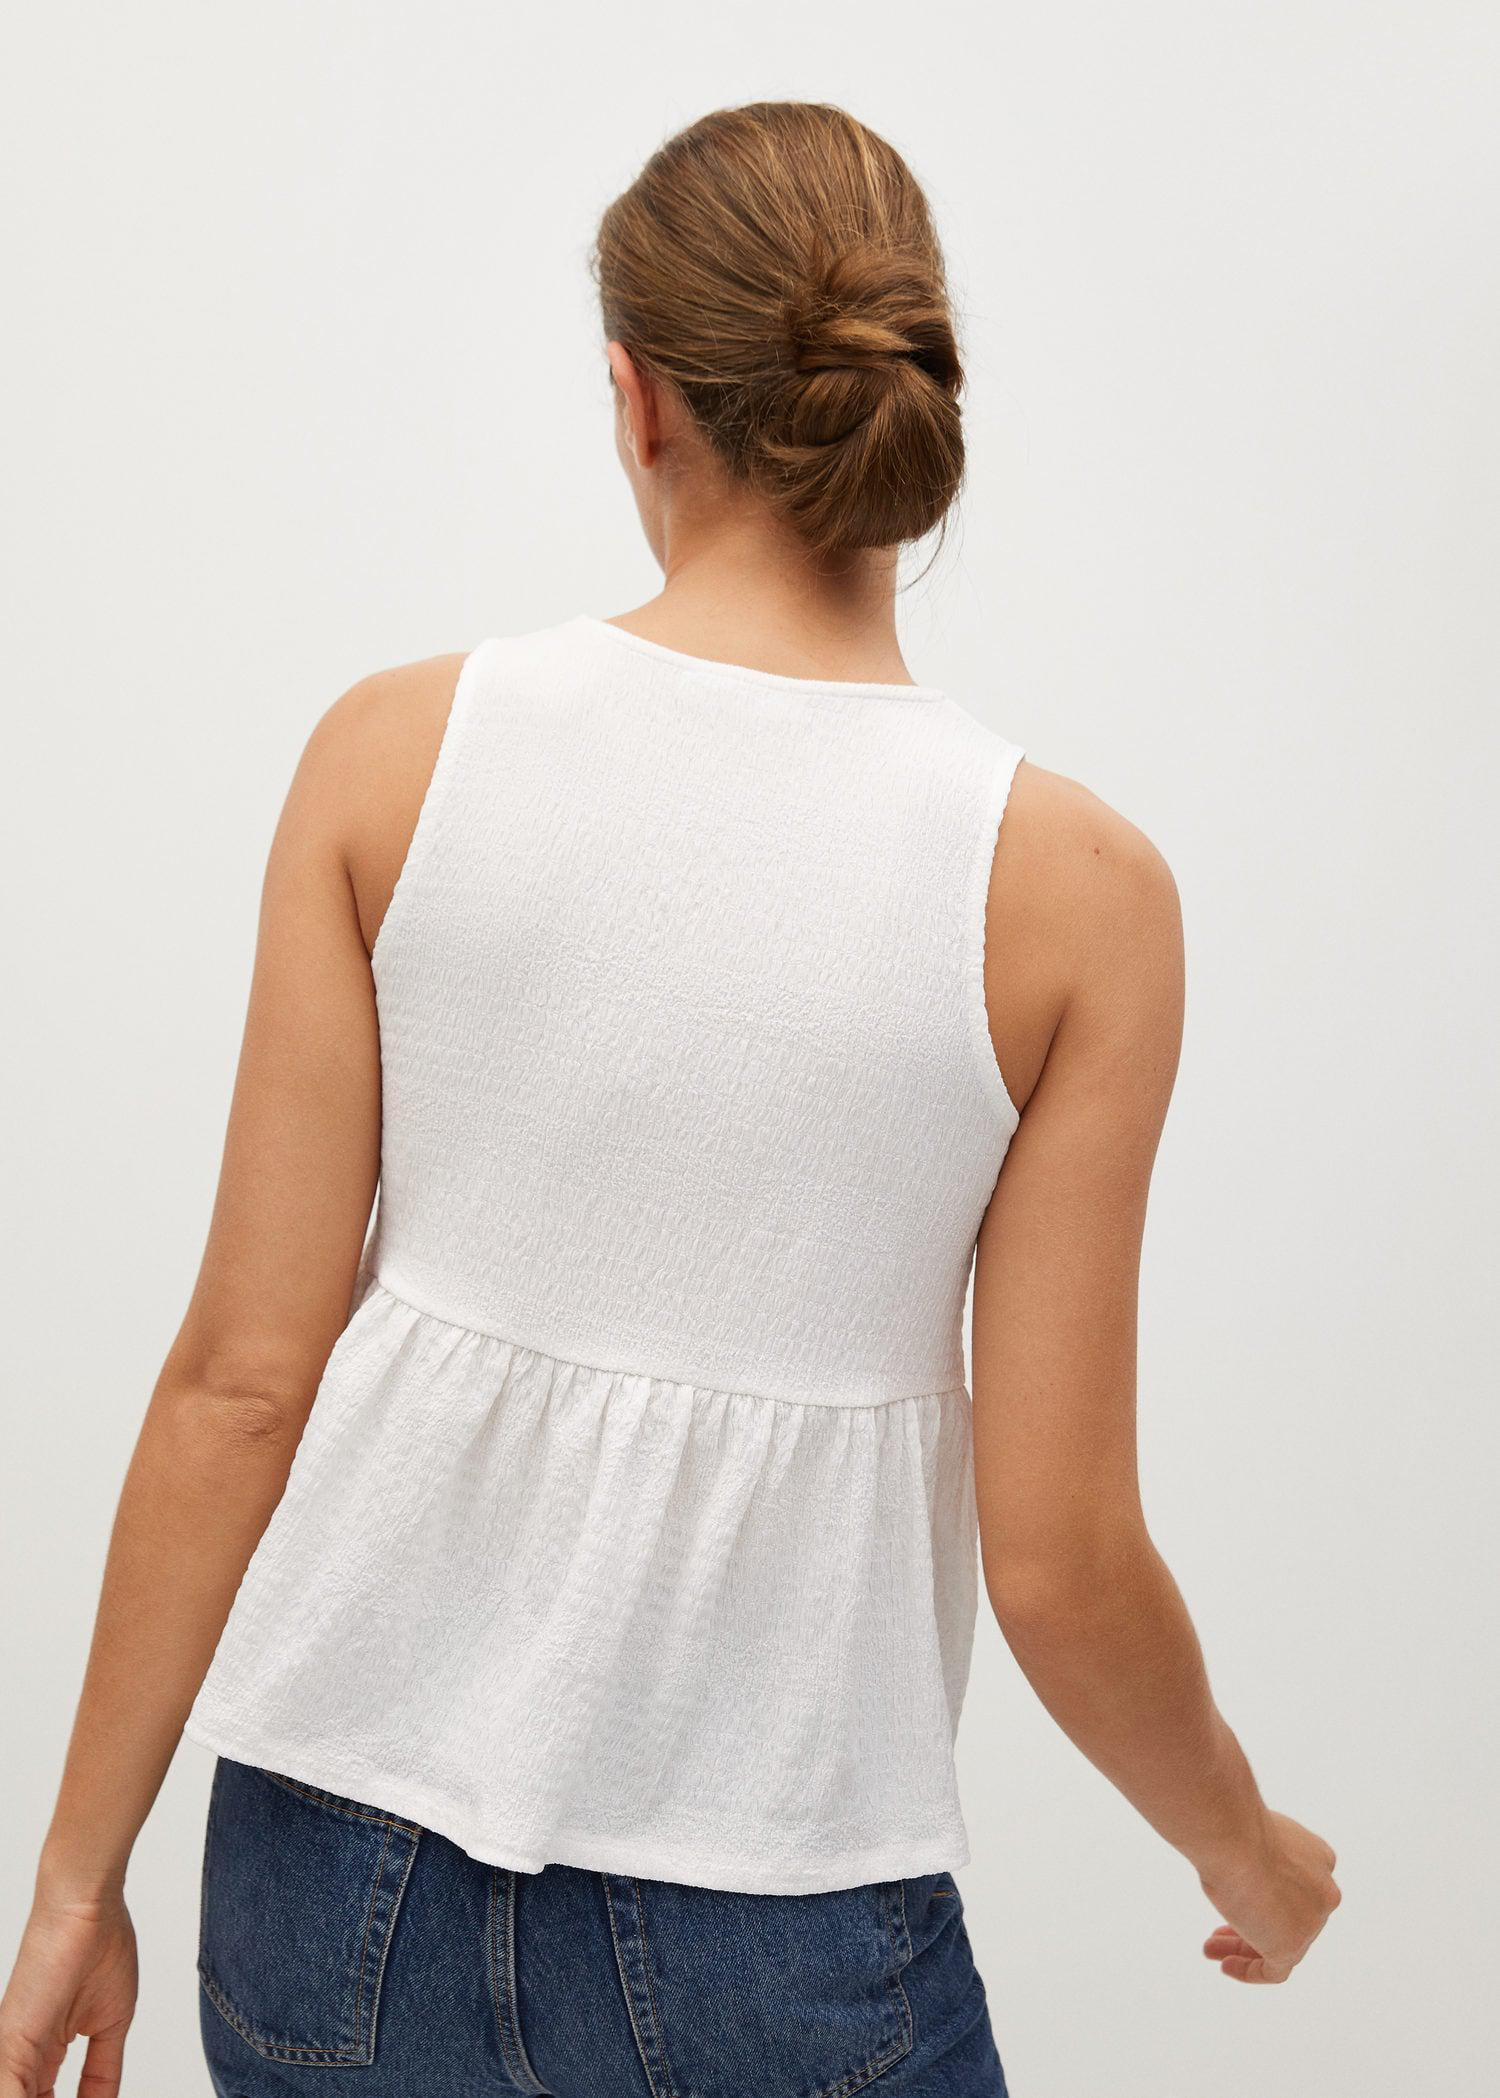 Top with ruffle texture 2